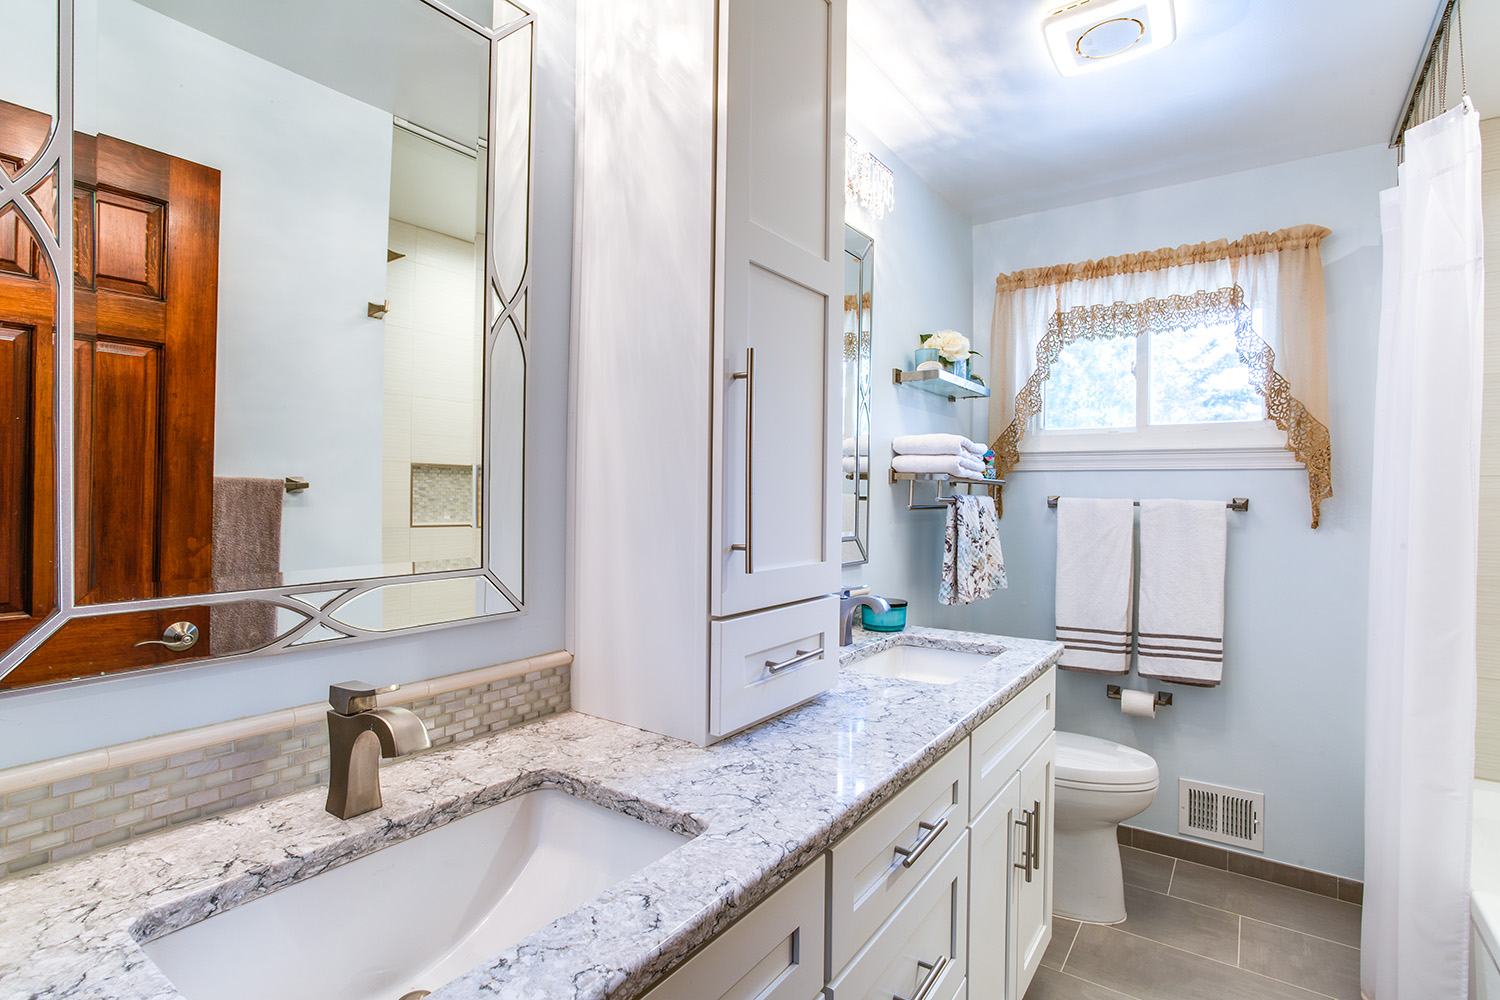 Springfield Bathroom remodel with Crystal cabinets in Maple and Silestone countertops